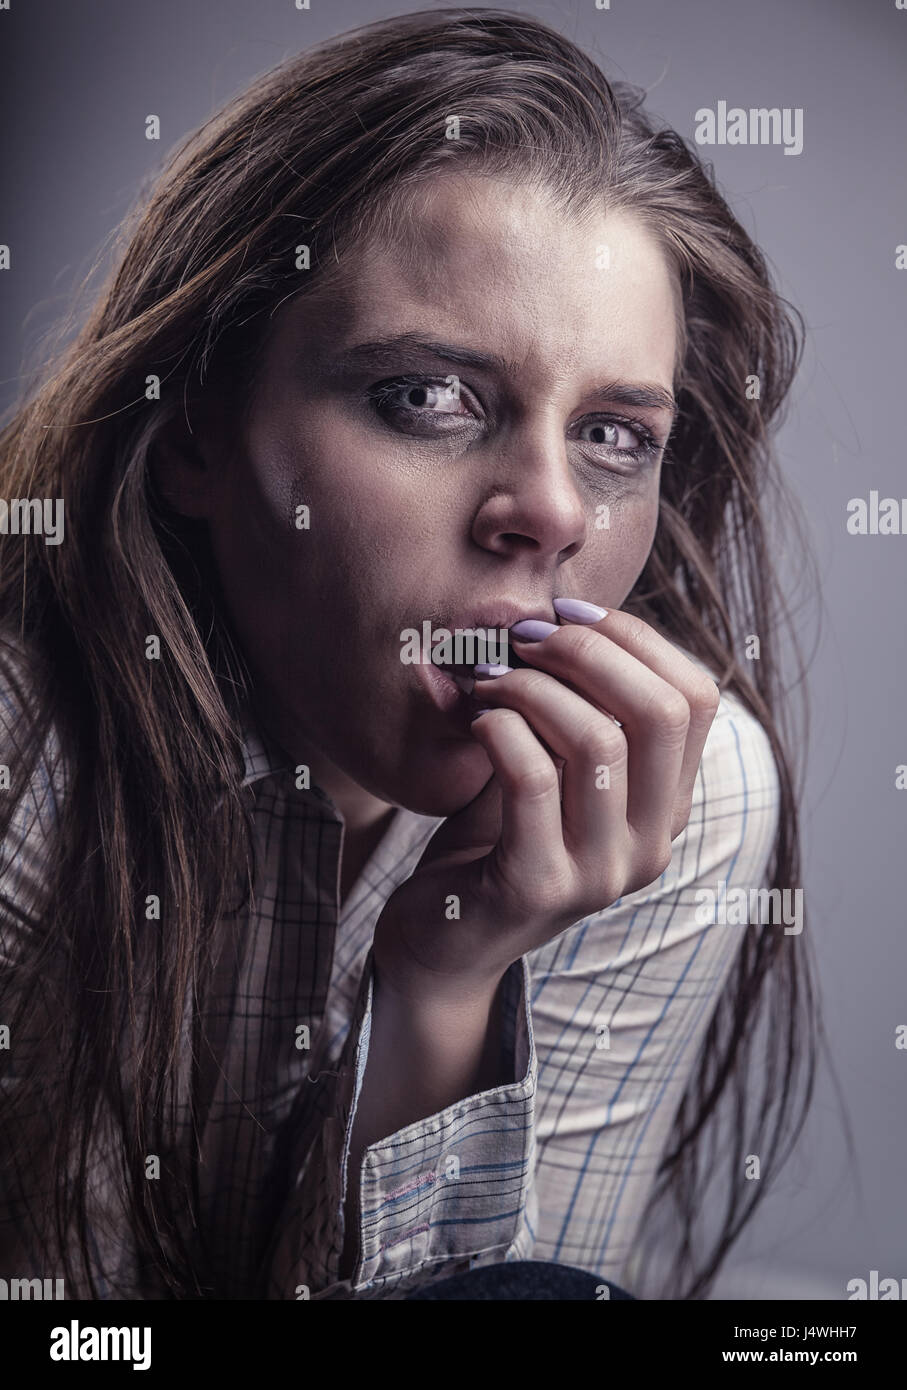 Young frightened woman with tearful eyes on a gray background - Stock Image